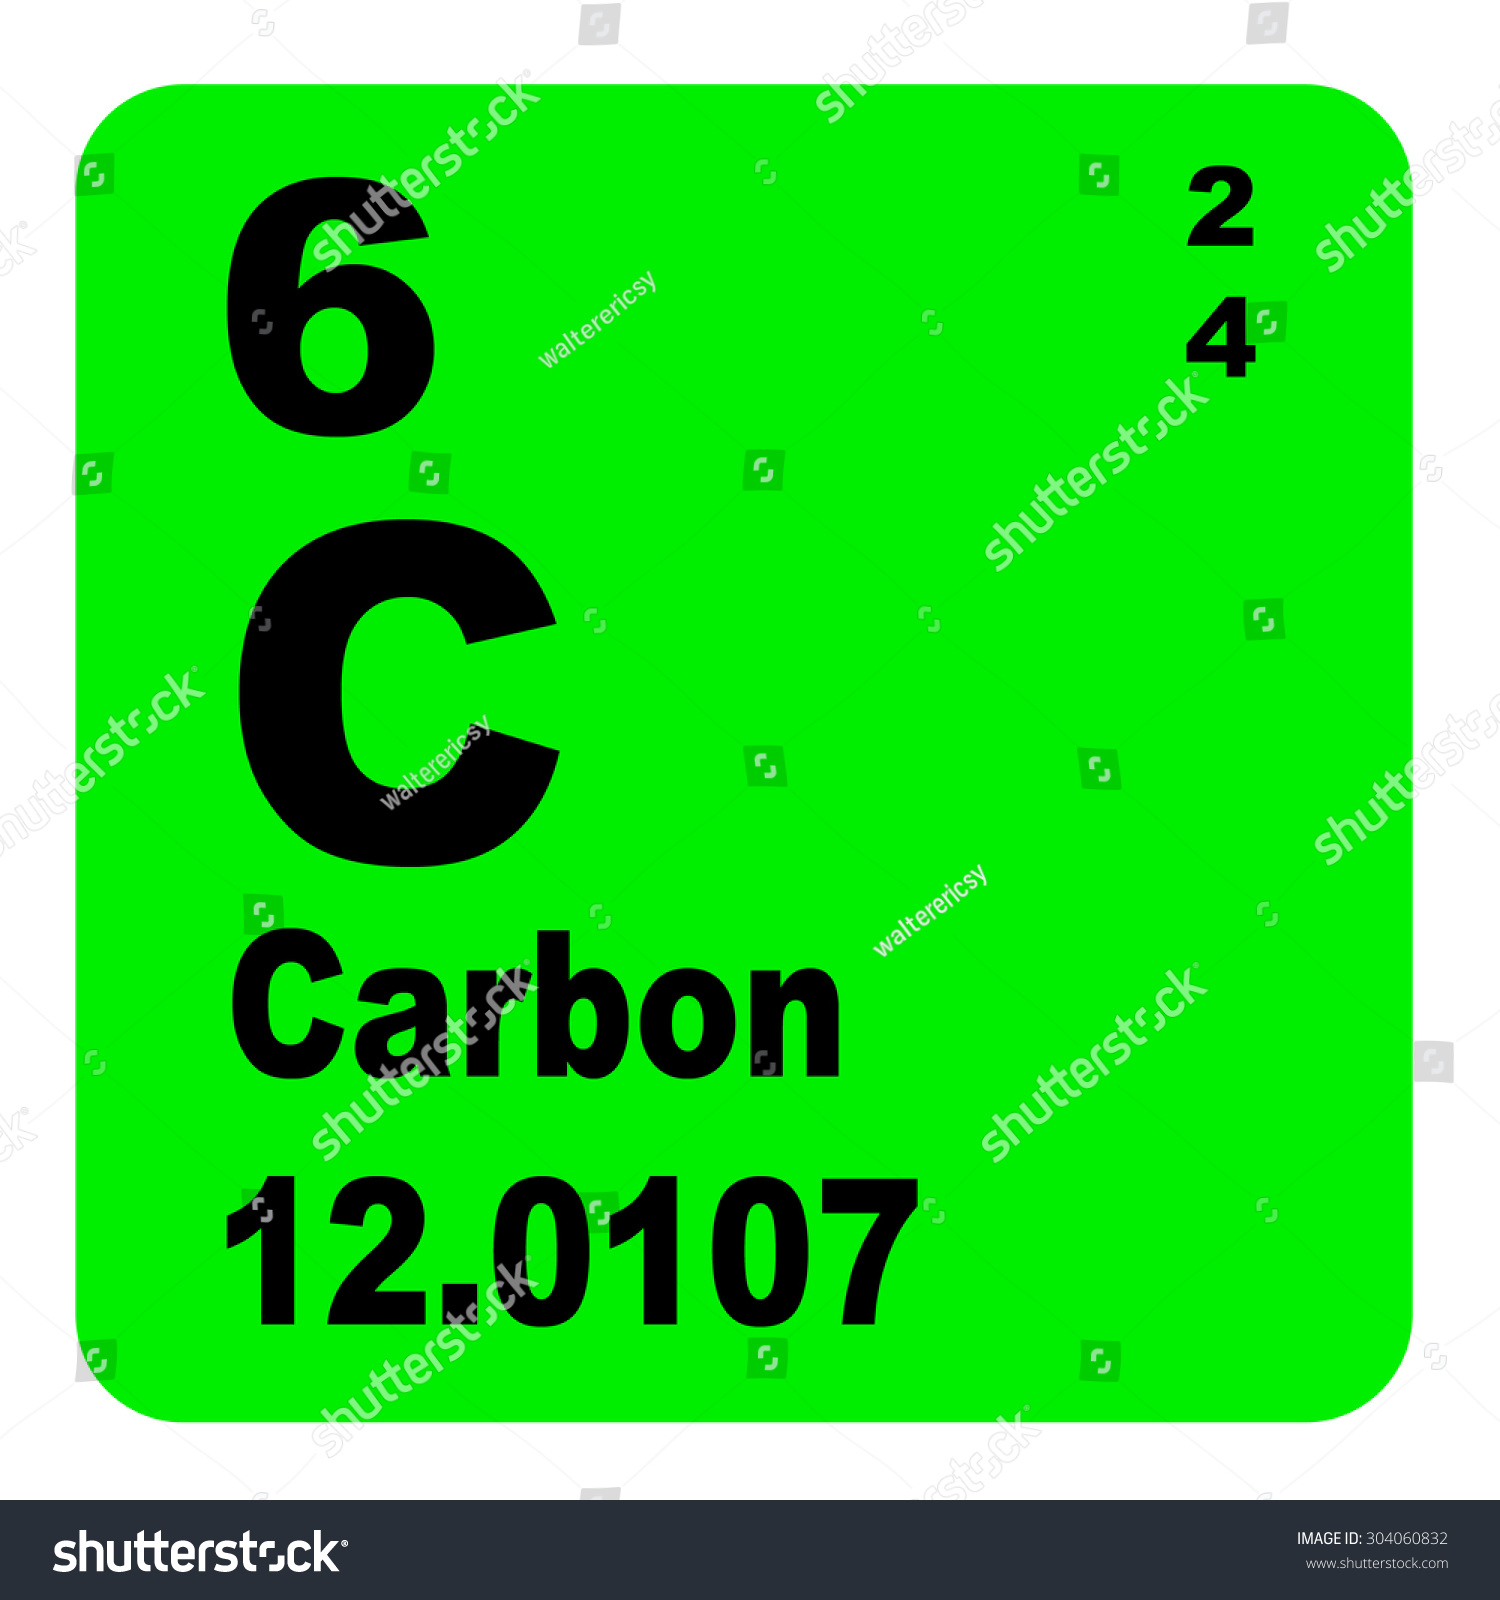 Periodic table of elements carbon images periodic table images symbol for carbon on periodic table choice image periodic table carbon periodic table elements stock illustration gamestrikefo Gallery